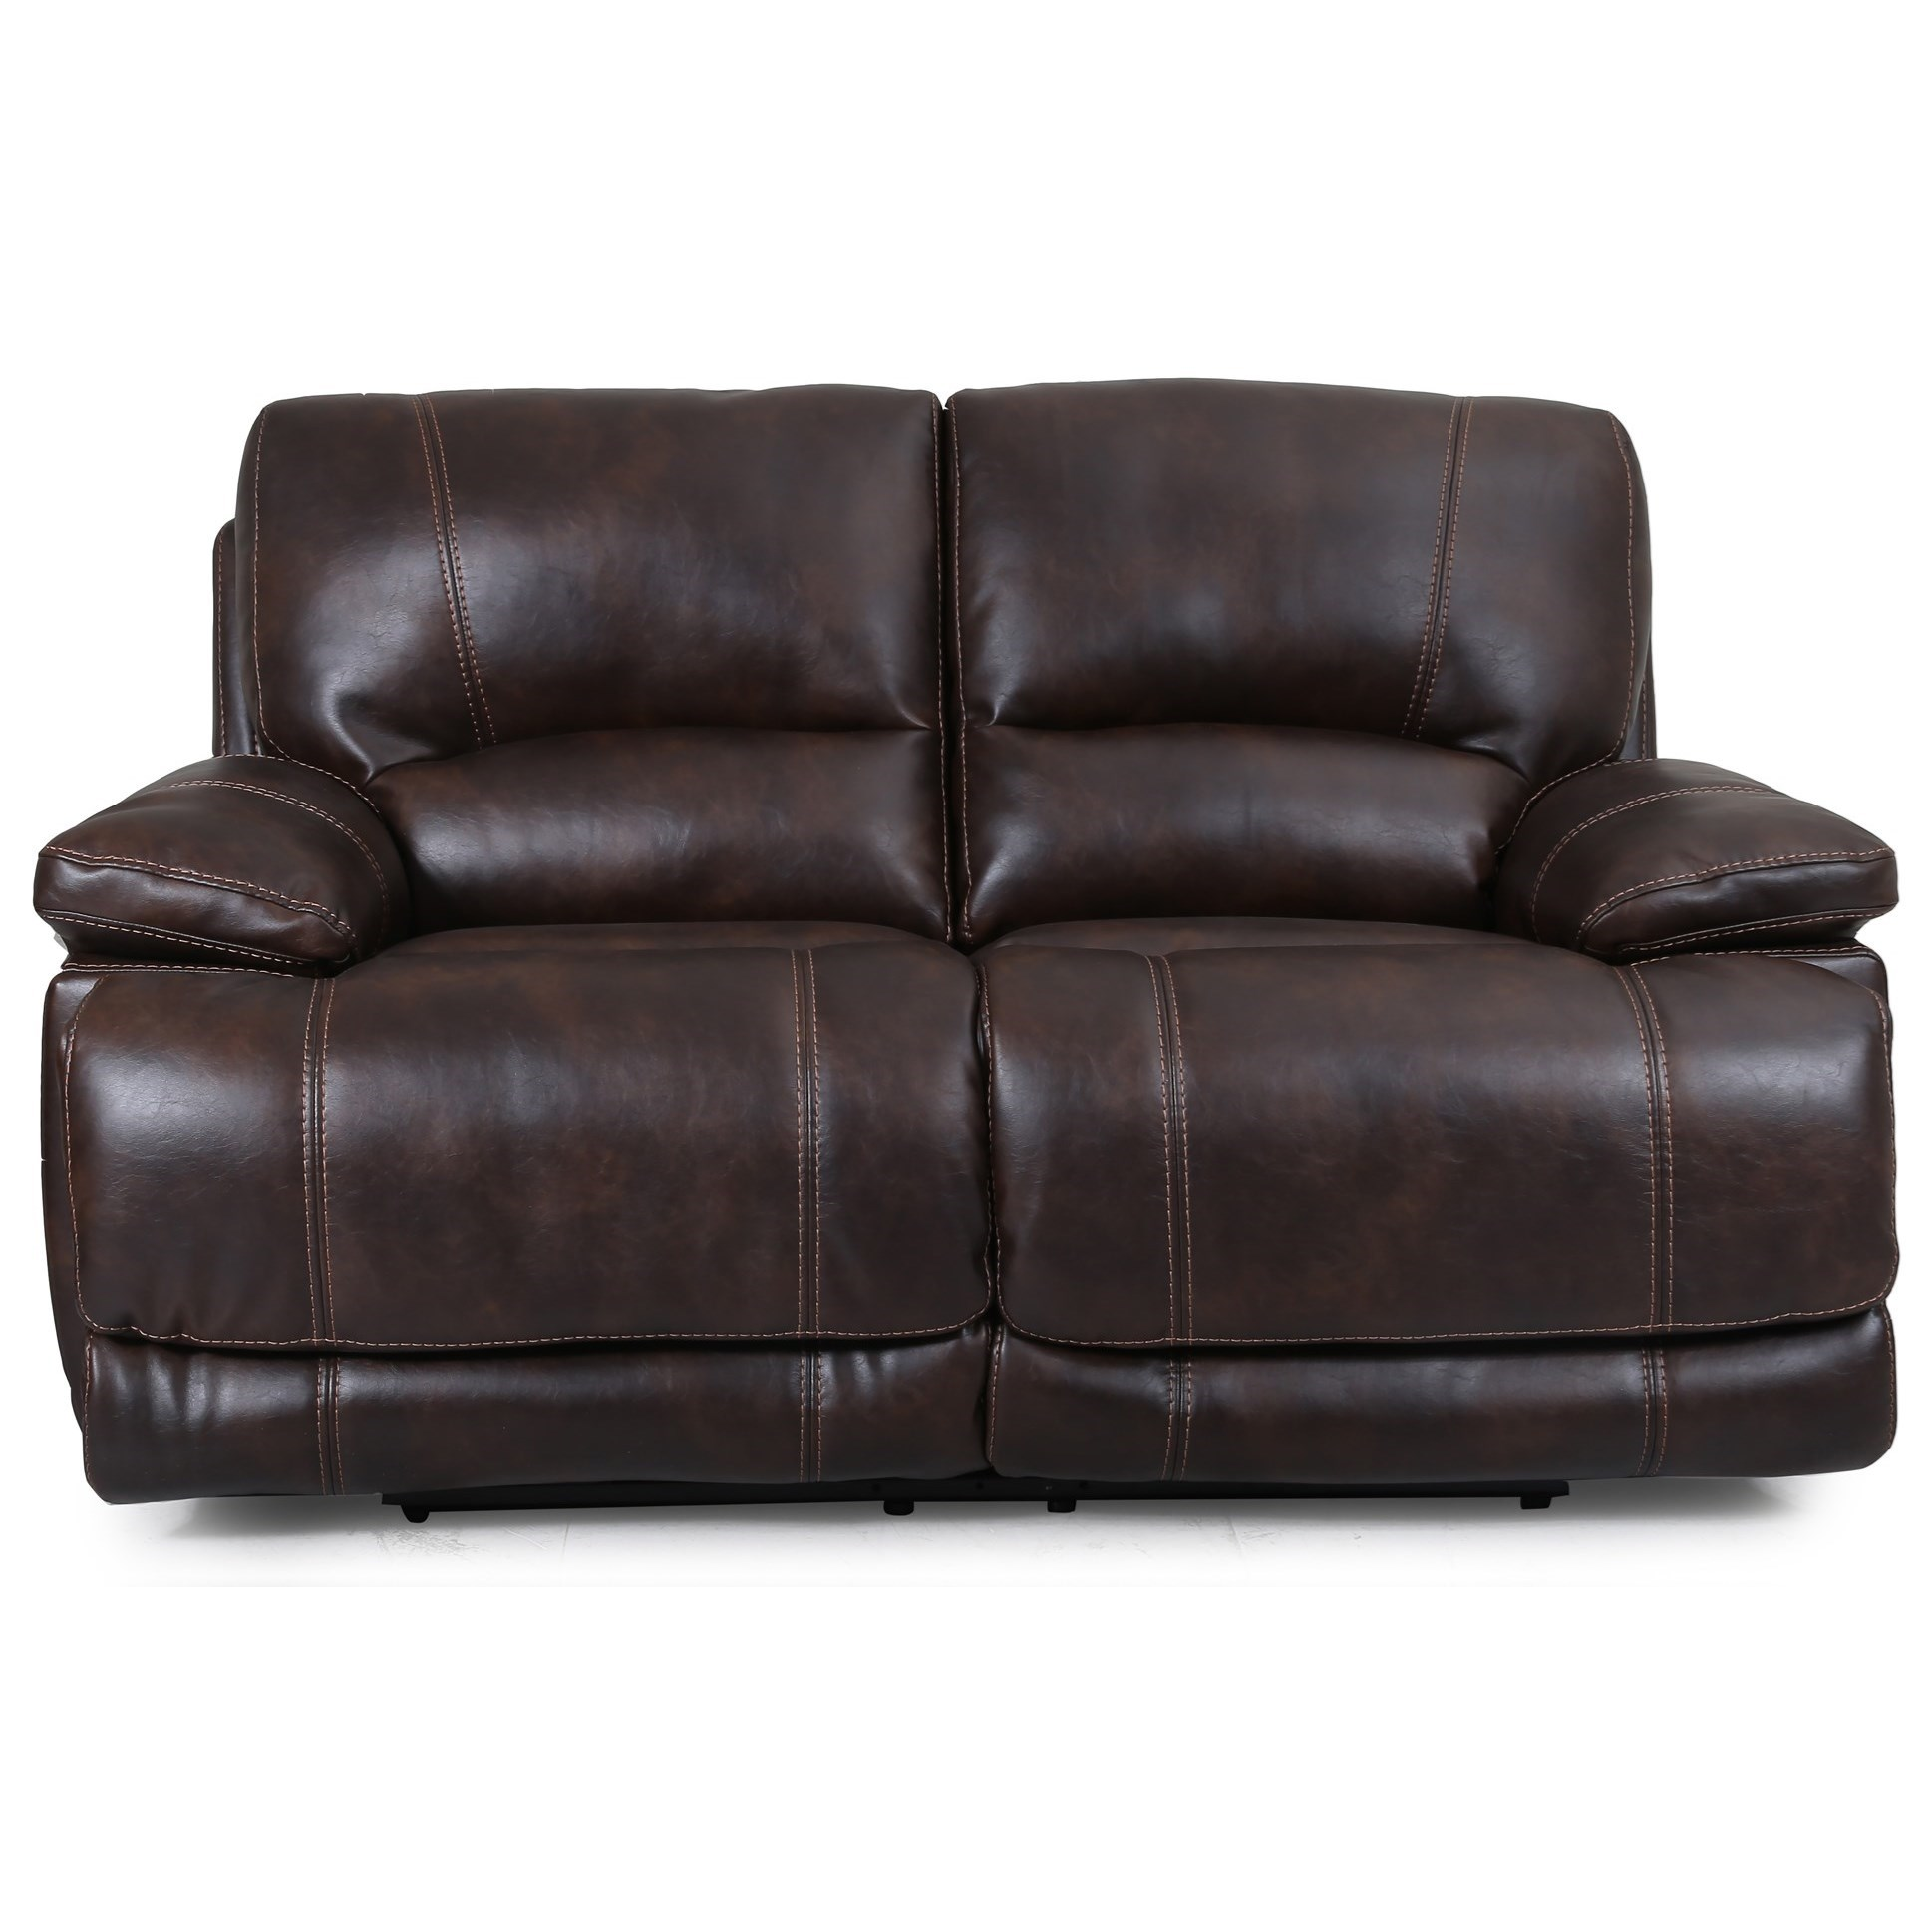 5185M Power Motion Loveseat by Cheers at Westrich Furniture & Appliances